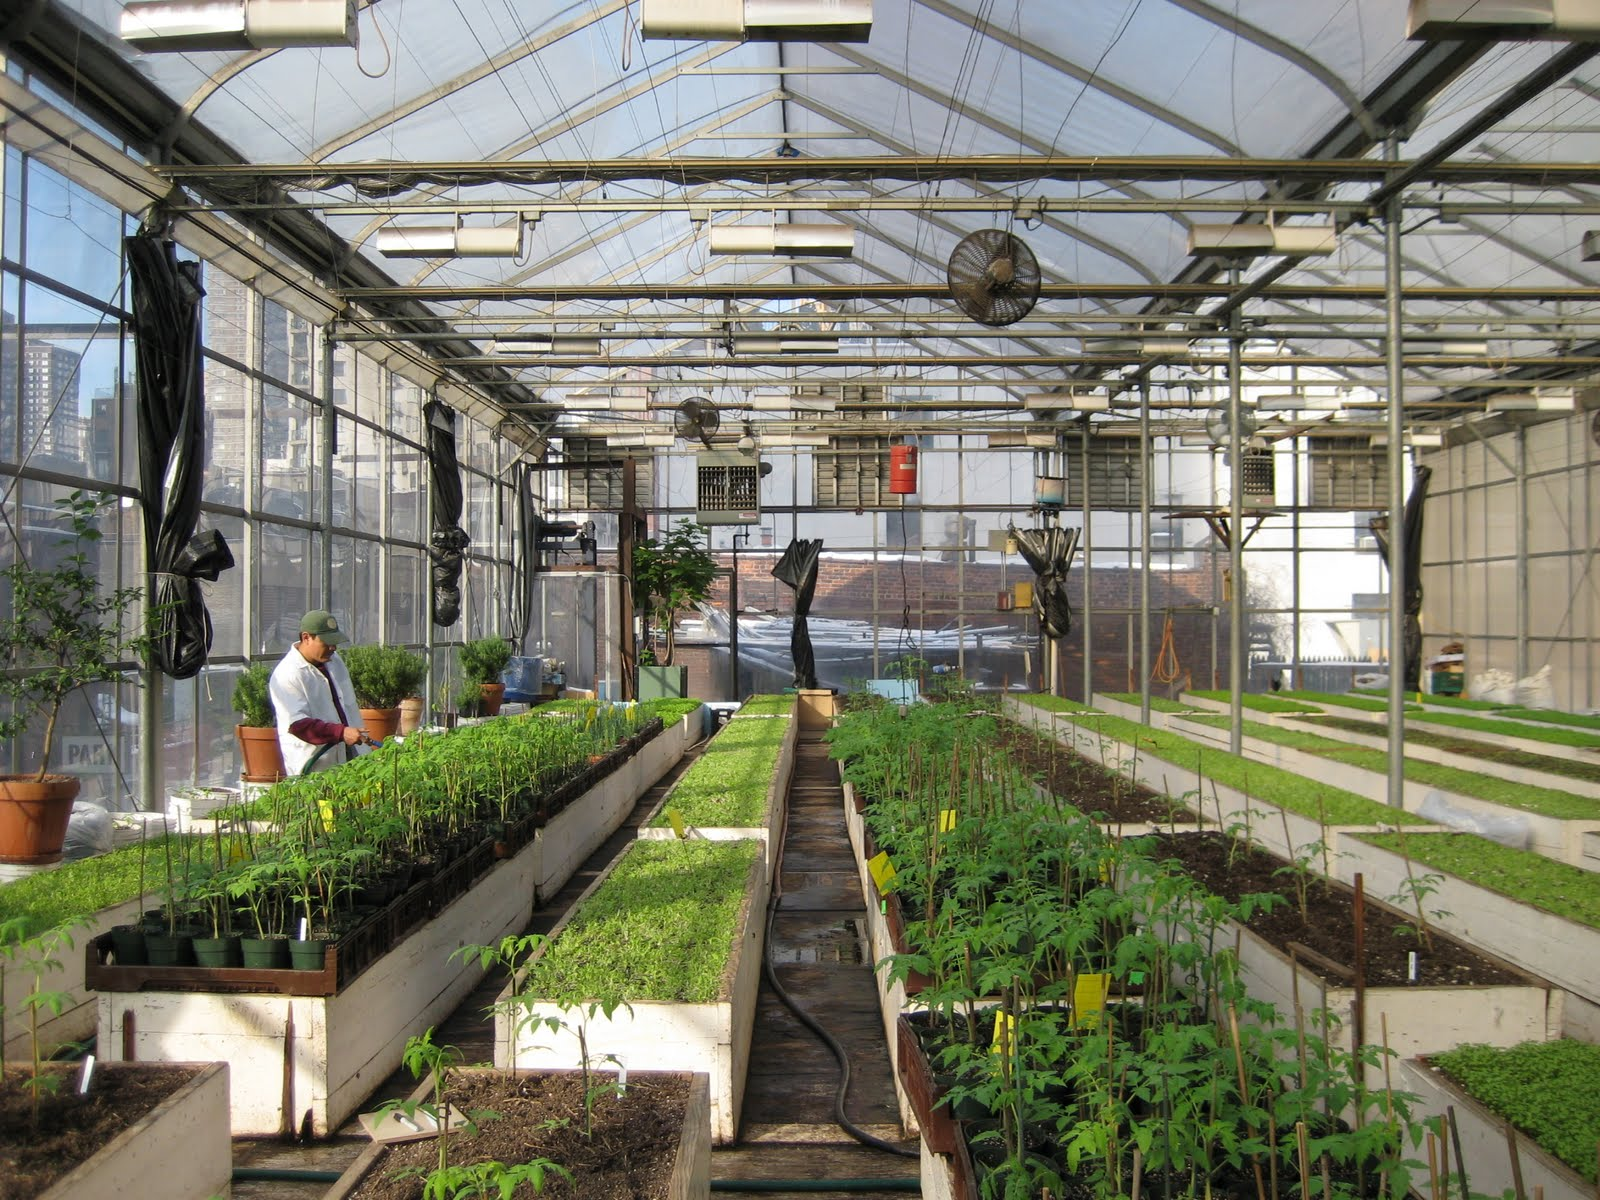 The greenhouse nyc